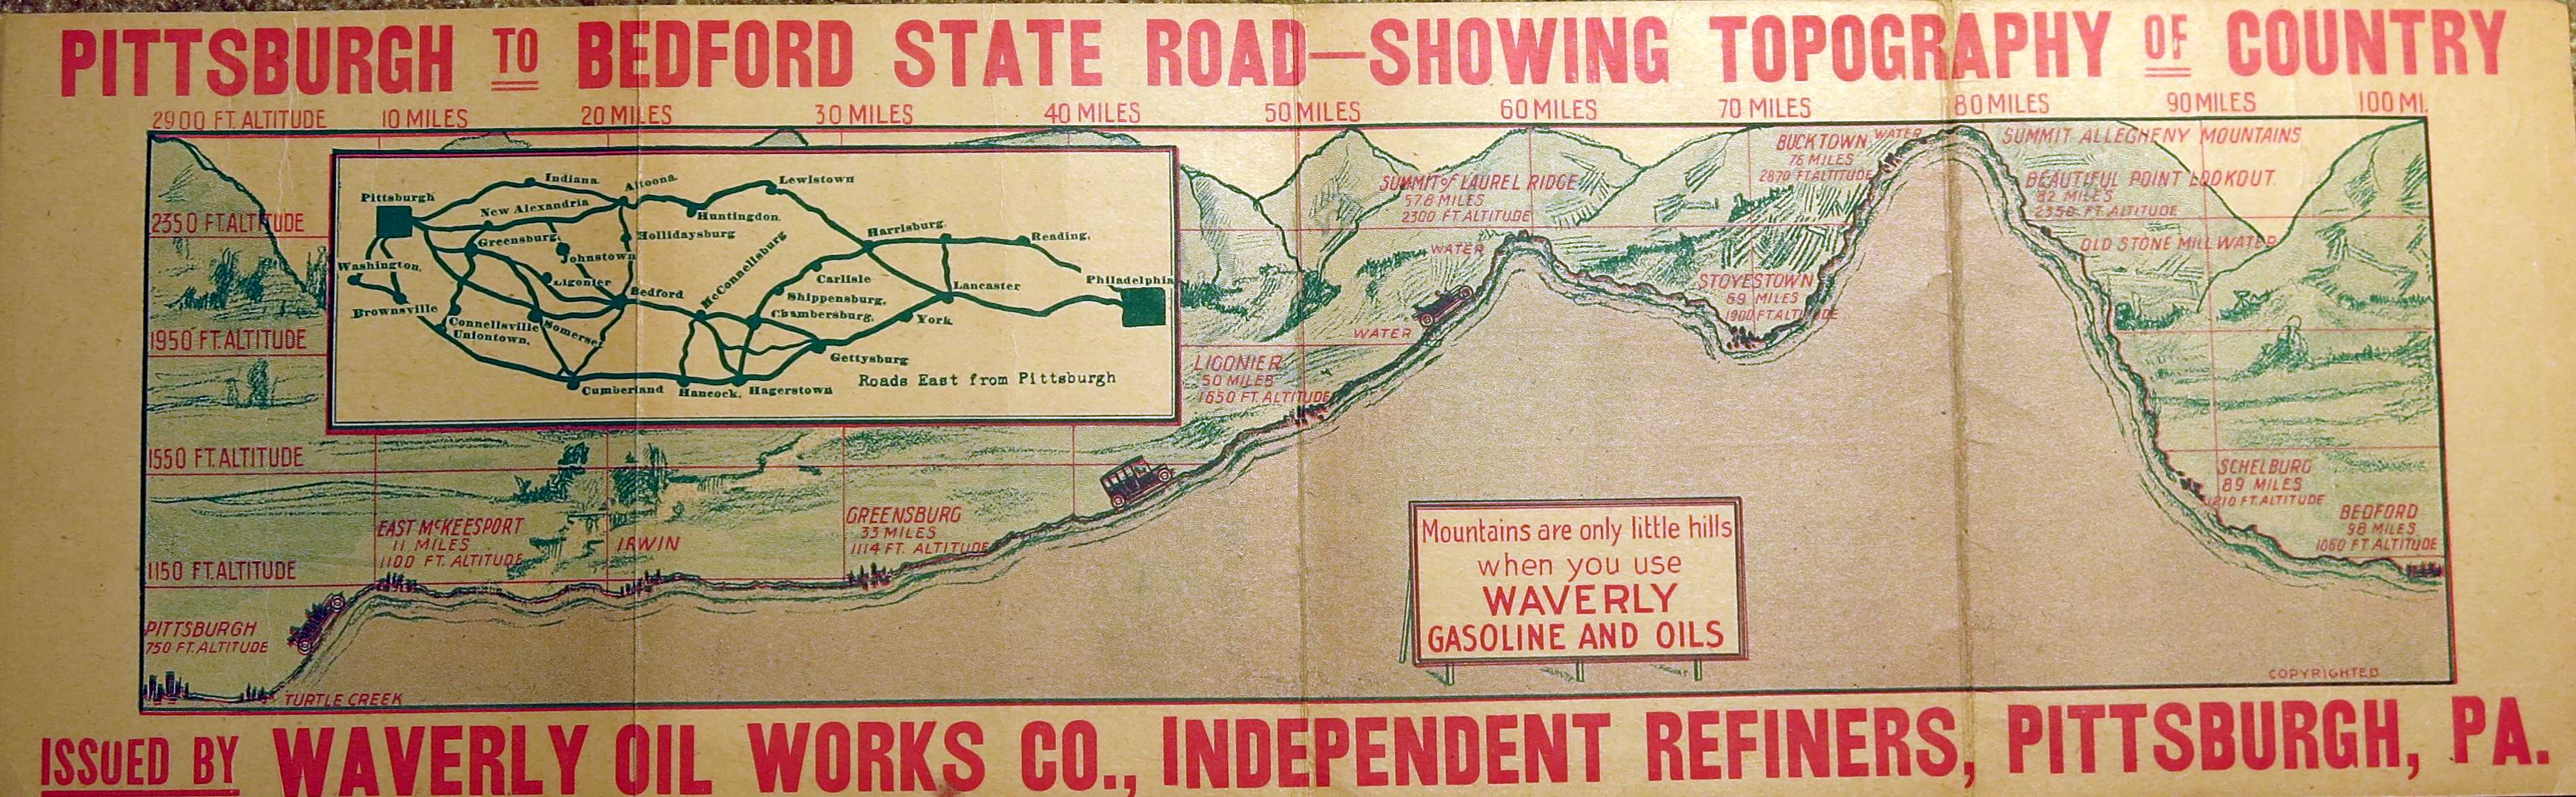 1910 S Oil Company Road Maps Of Pennsylvania